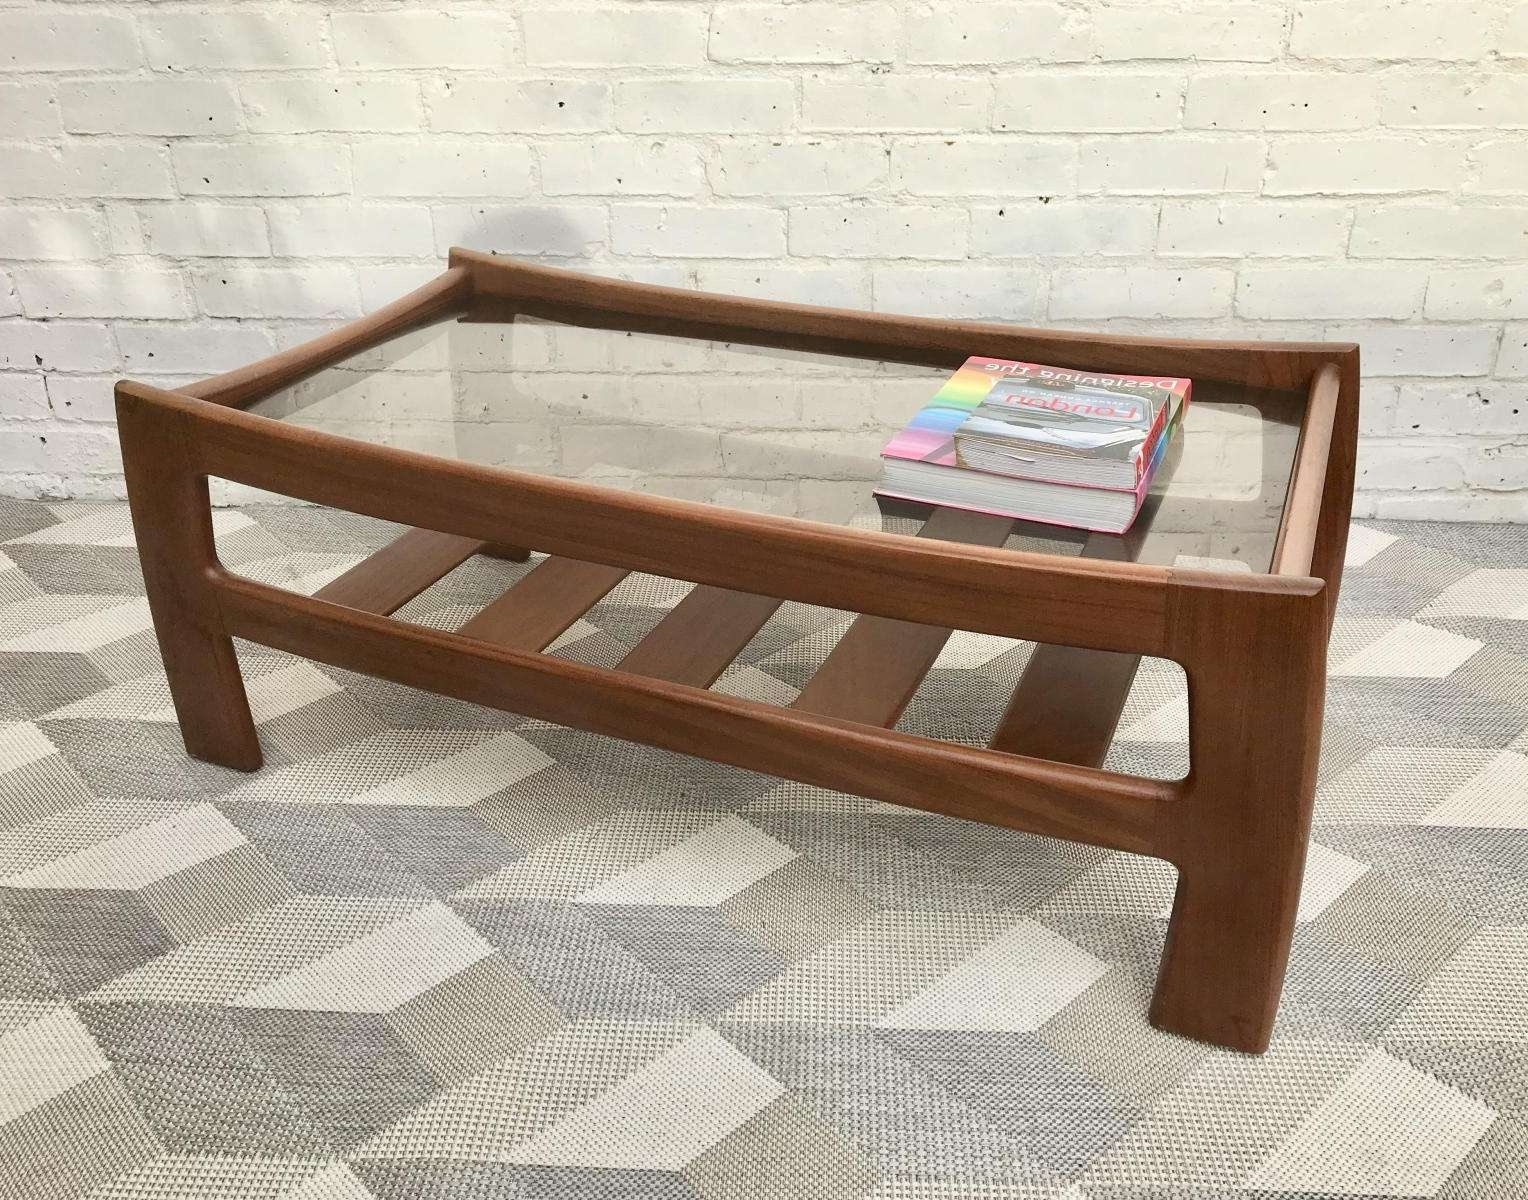 Vintage Glass Coffee Table With Shelf From G Plan For Sale At Pamono Inside Trendy Glass Coffee Tables With Shelf (Gallery 19 of 20)